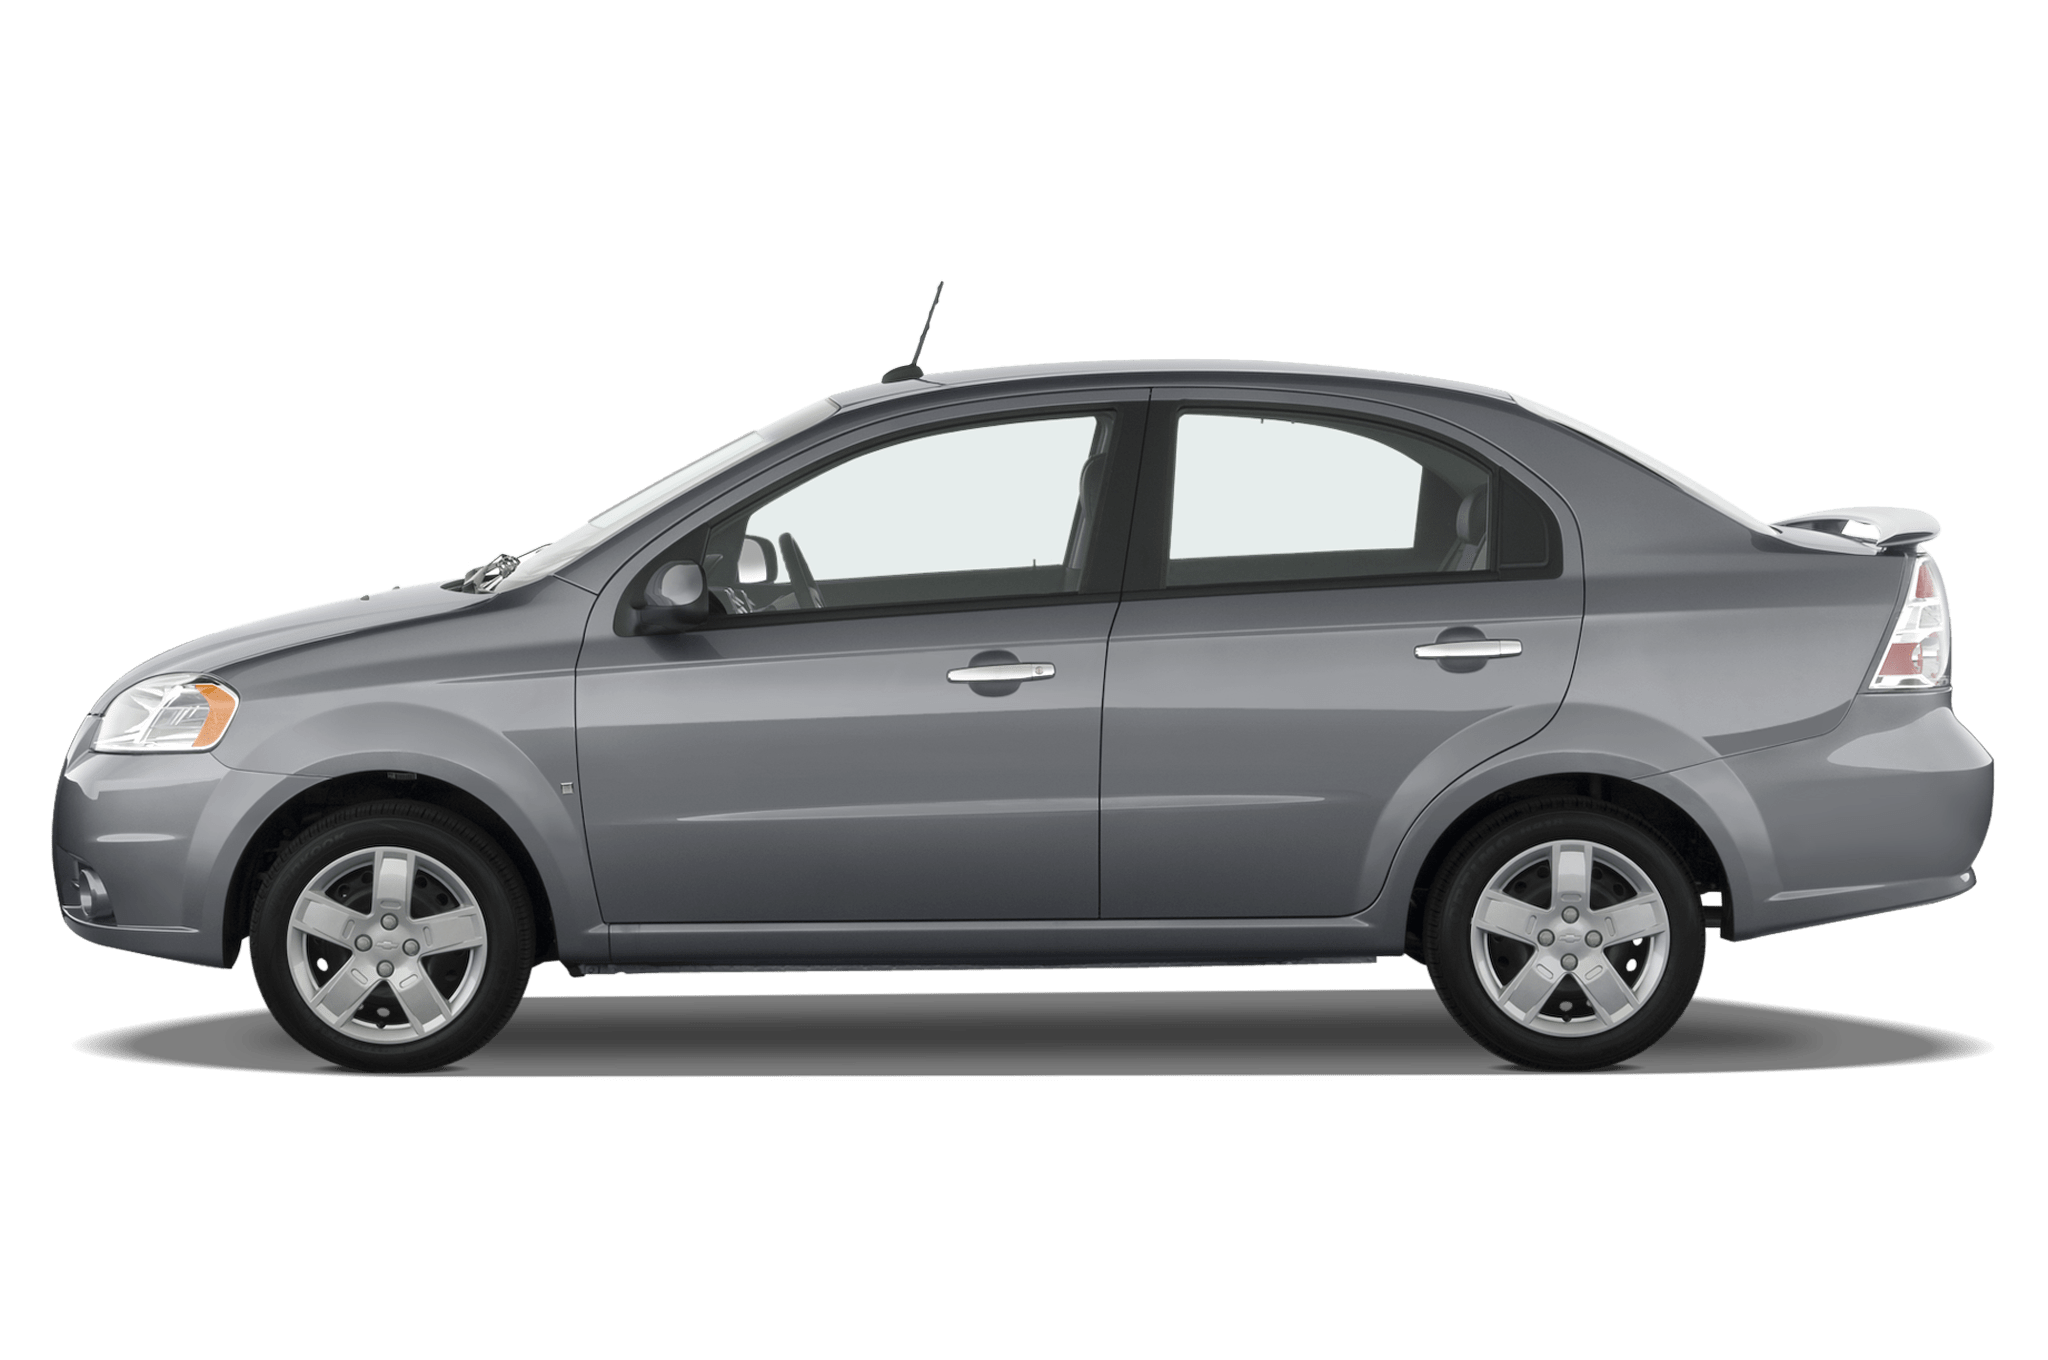 Chevy Aveo for hire at Just In Time Transportation Services